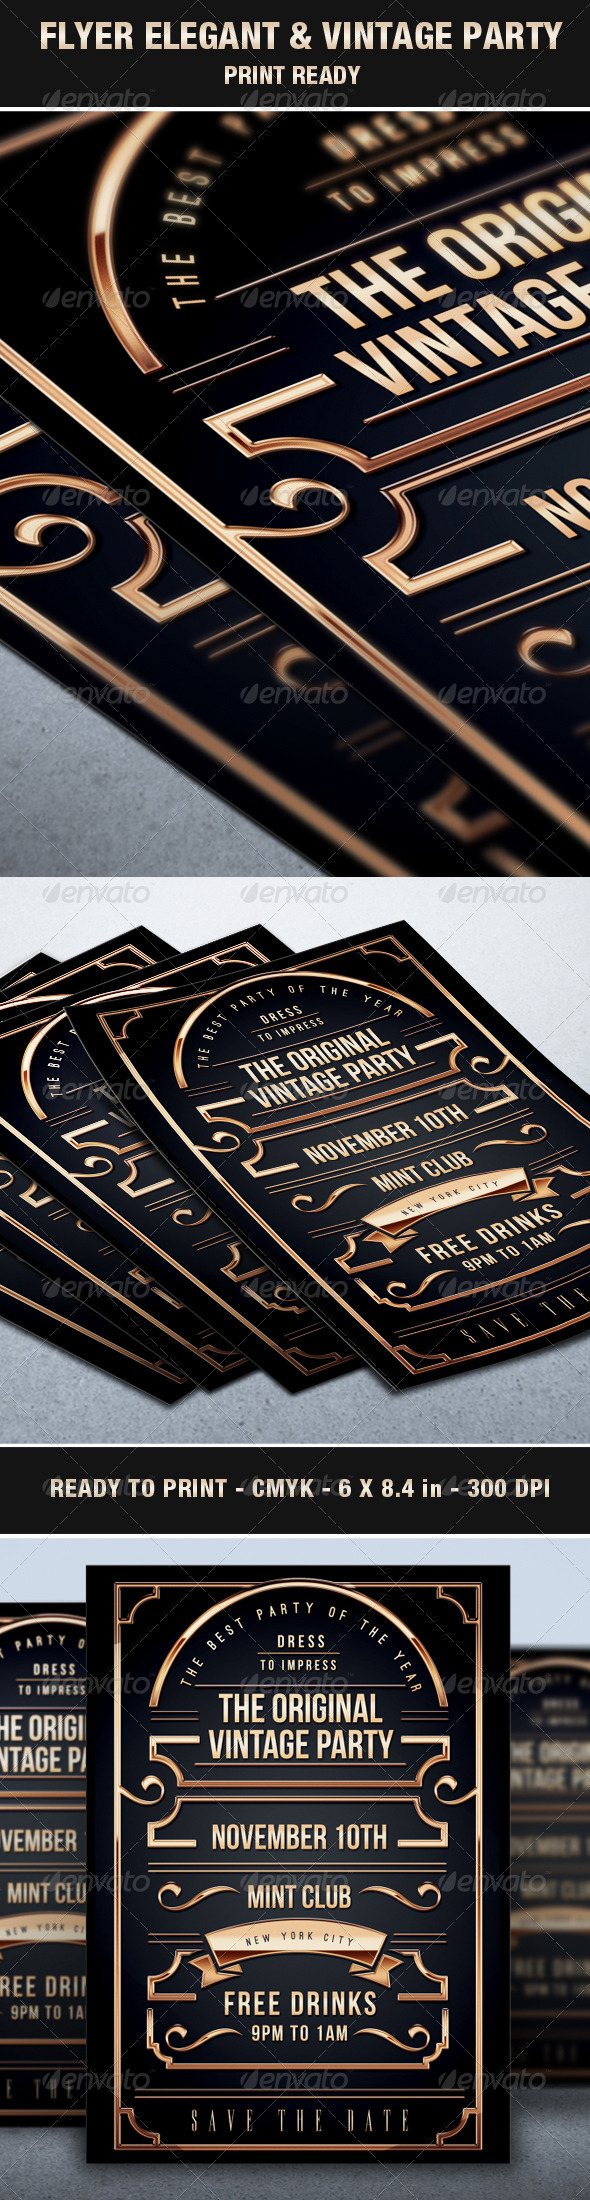 GraphicRiver Flyer Vintage & Exclusive Party Elegant Luxury Vip 6860244